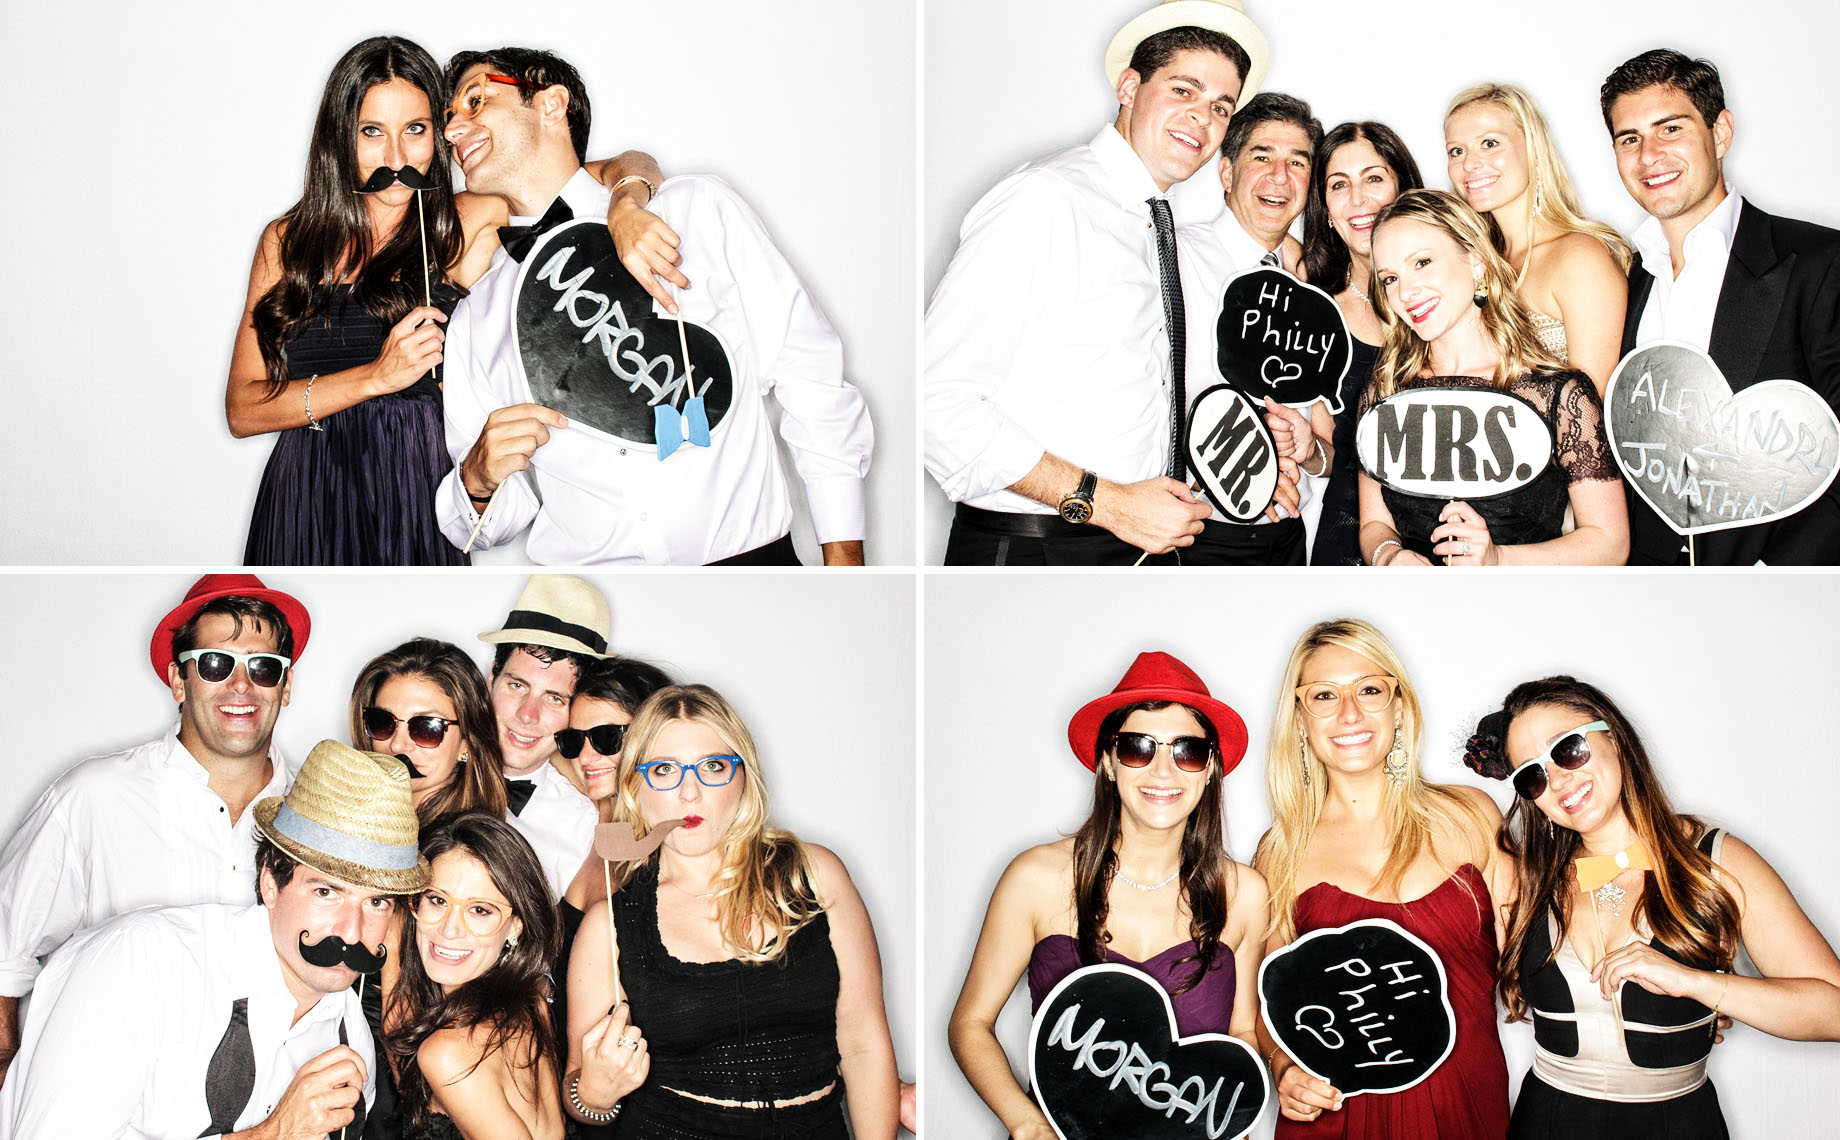 wedding photo booth pictures save up idea